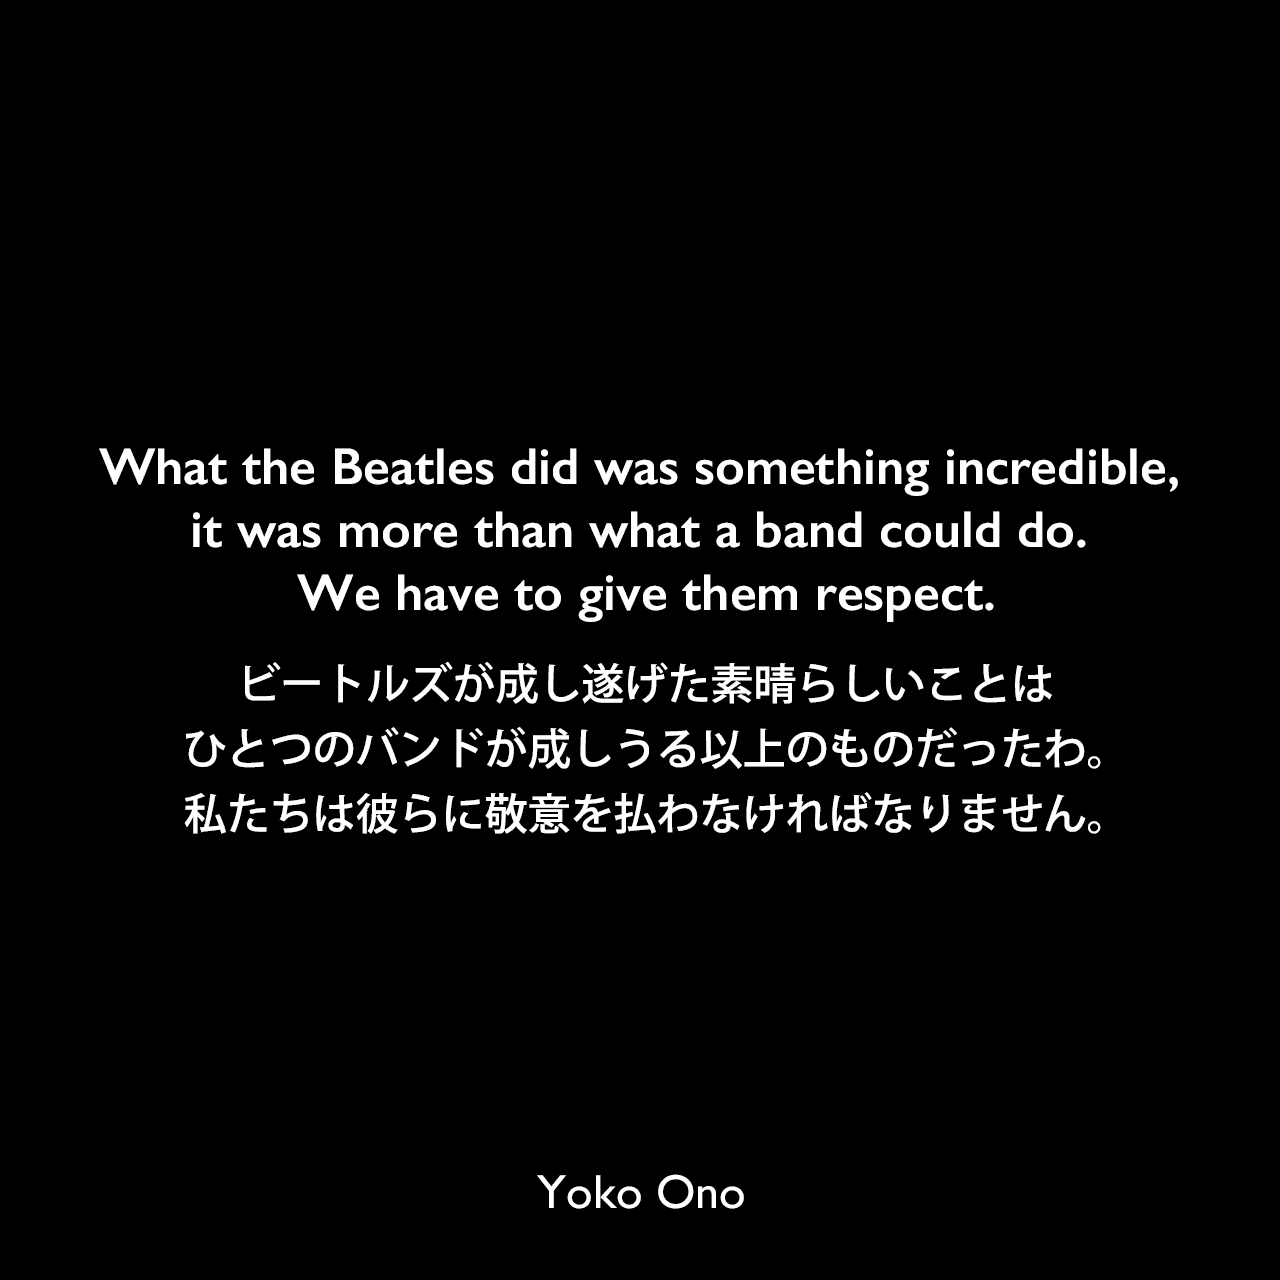 What the Beatles did was something incredible, it was more than what a band could do. We have to give them respect.ビートルズが成し遂げた素晴らしいことは、ひとつのバンドが成しうる以上のものだったわ。私たちは彼らに敬意を払わなければなりません。Yoko Ono